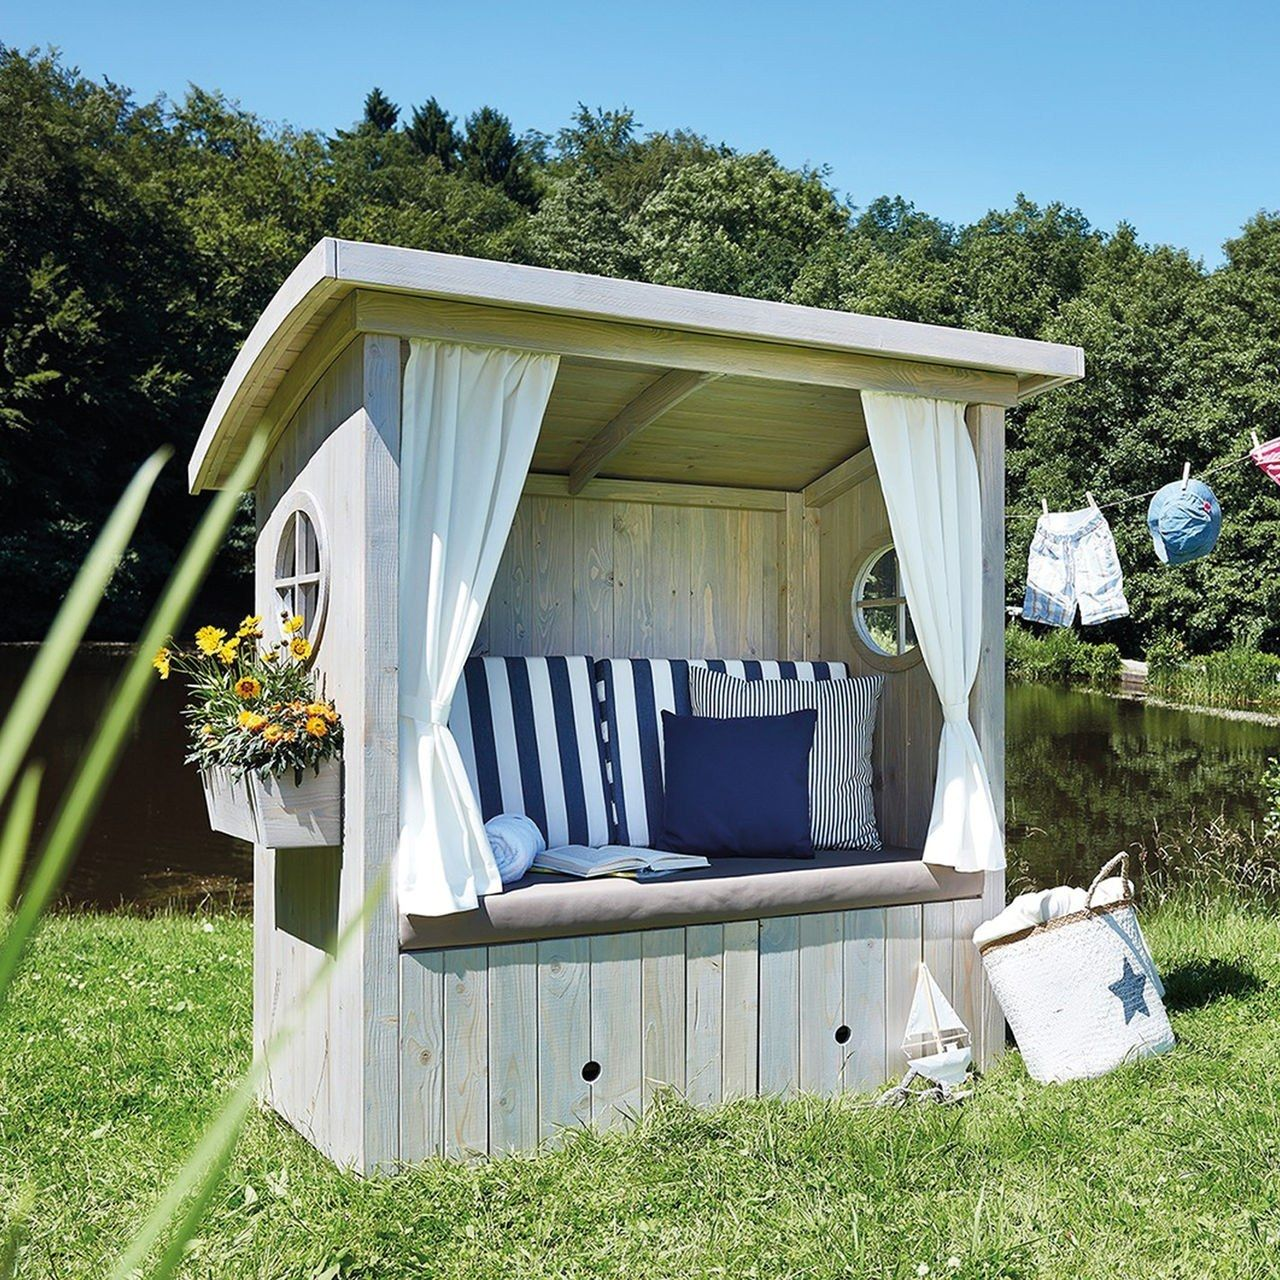 alpenh tte h ttenzauber statt strandkorb garten pinterest garten garten ideen und garten deko. Black Bedroom Furniture Sets. Home Design Ideas